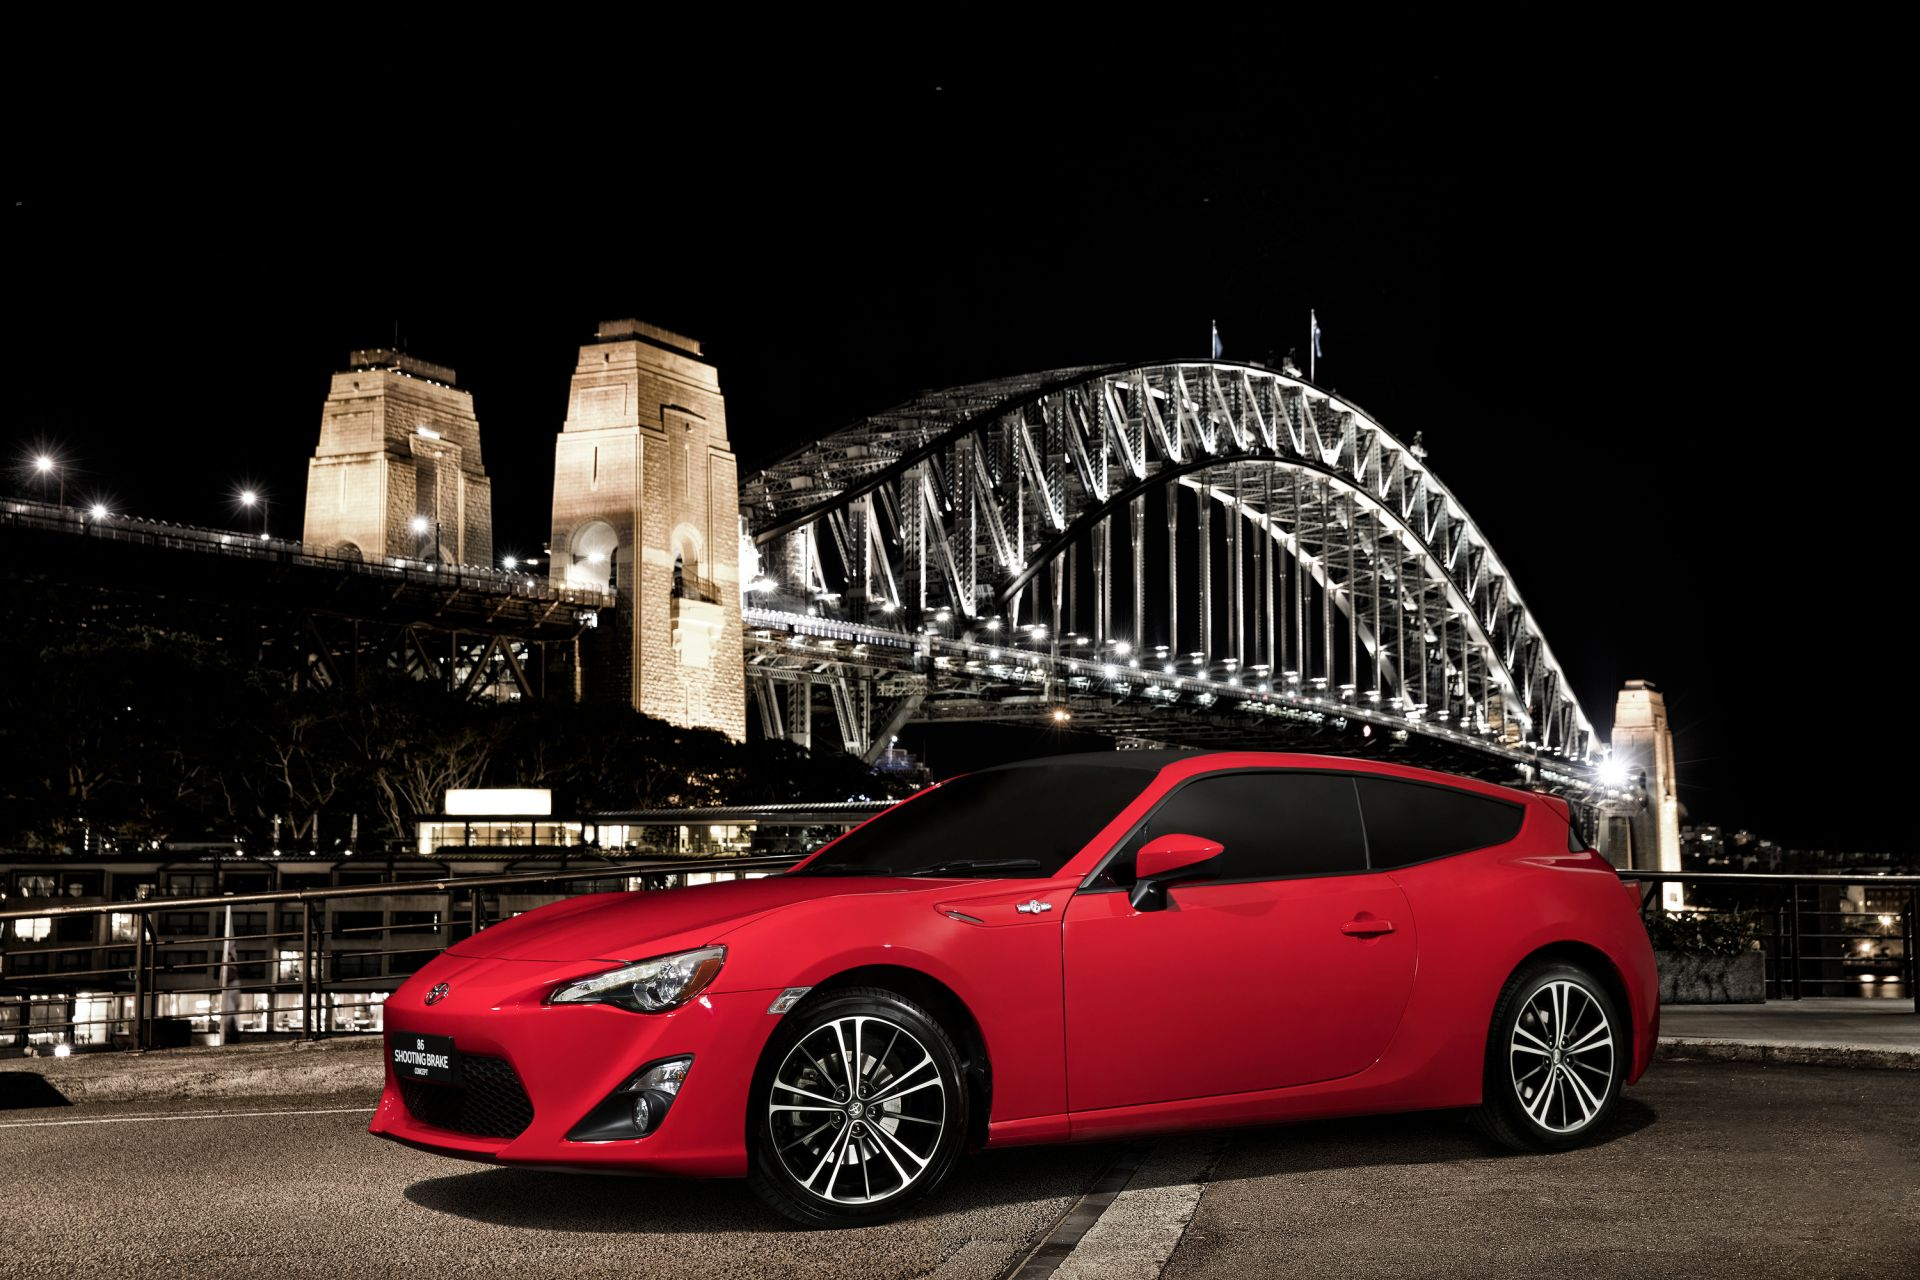 Toyota Gt86 Shooting Brake Concept Toyota Gt86 Zn6